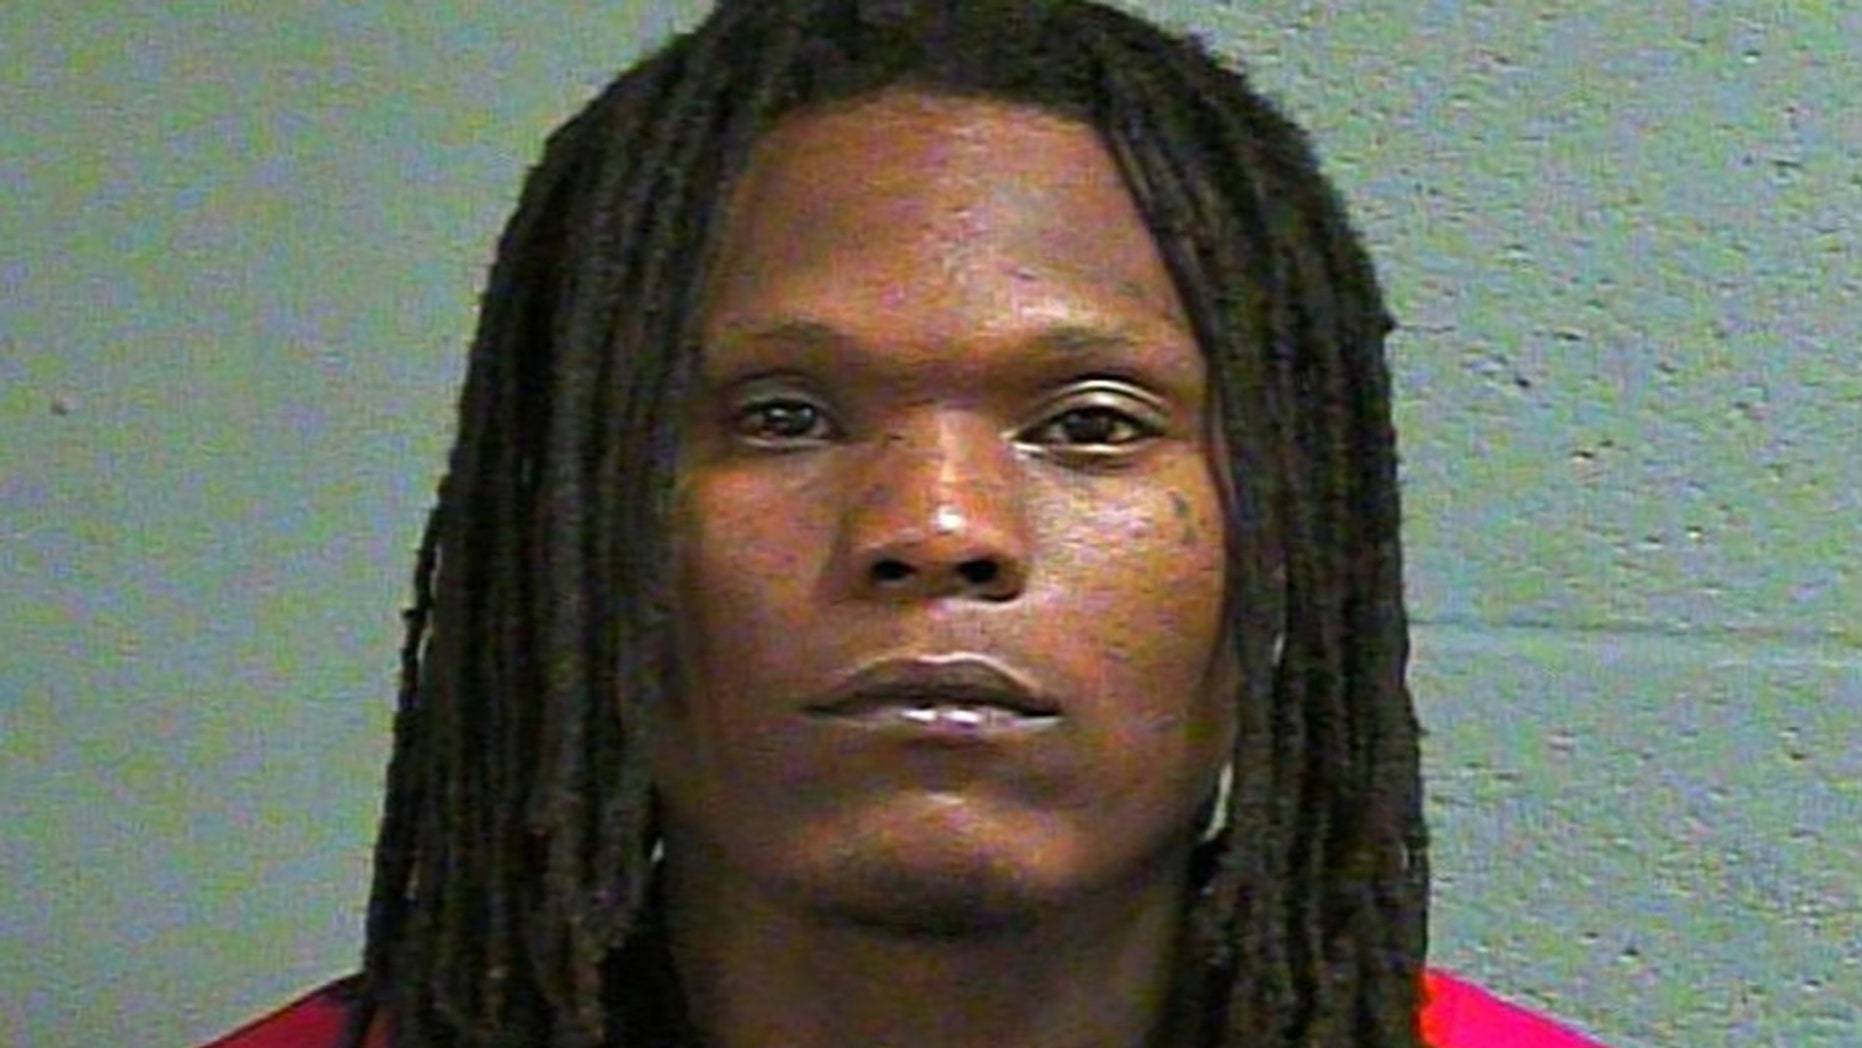 Jerome Thompson allegedly charged at a security guard with steak knives.